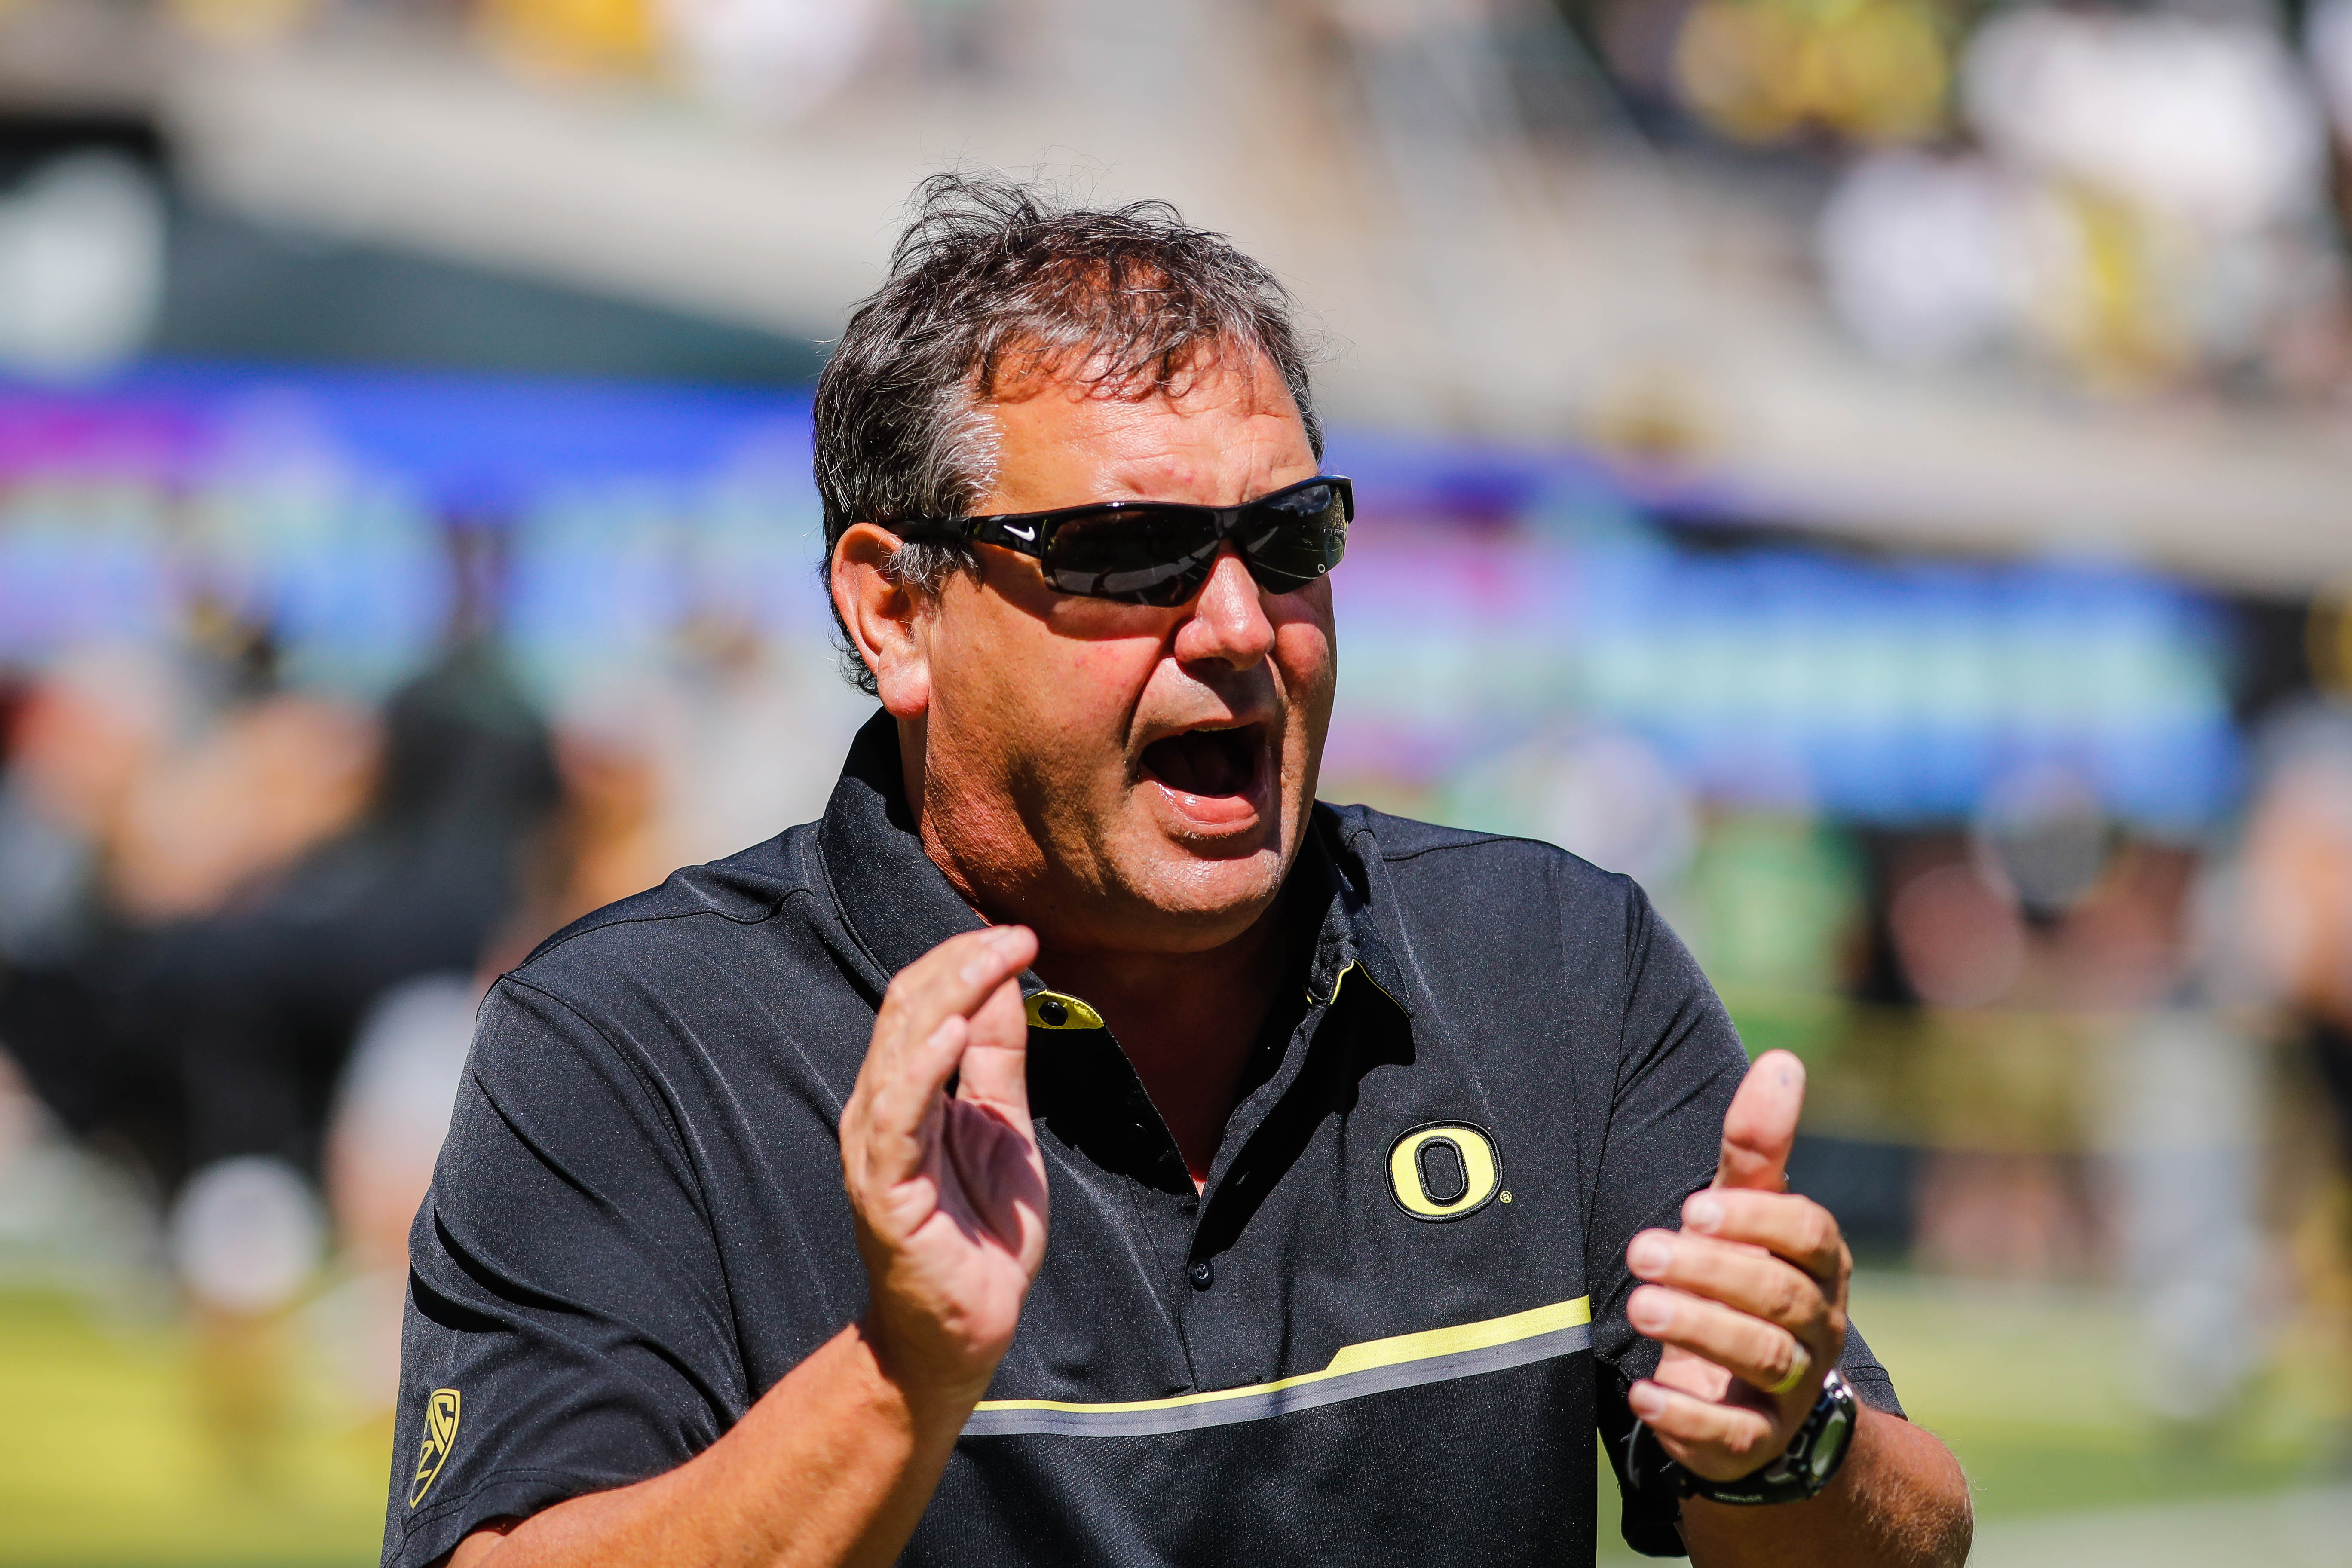 Oregon defensive coordinator Brady Hoke warms up the defensive linemen before playing UC Davis during an NCAA college football game in Eugene, Ore., Saturday, Sept. 3, 2016. (AP Photo/Thomas Boyd)